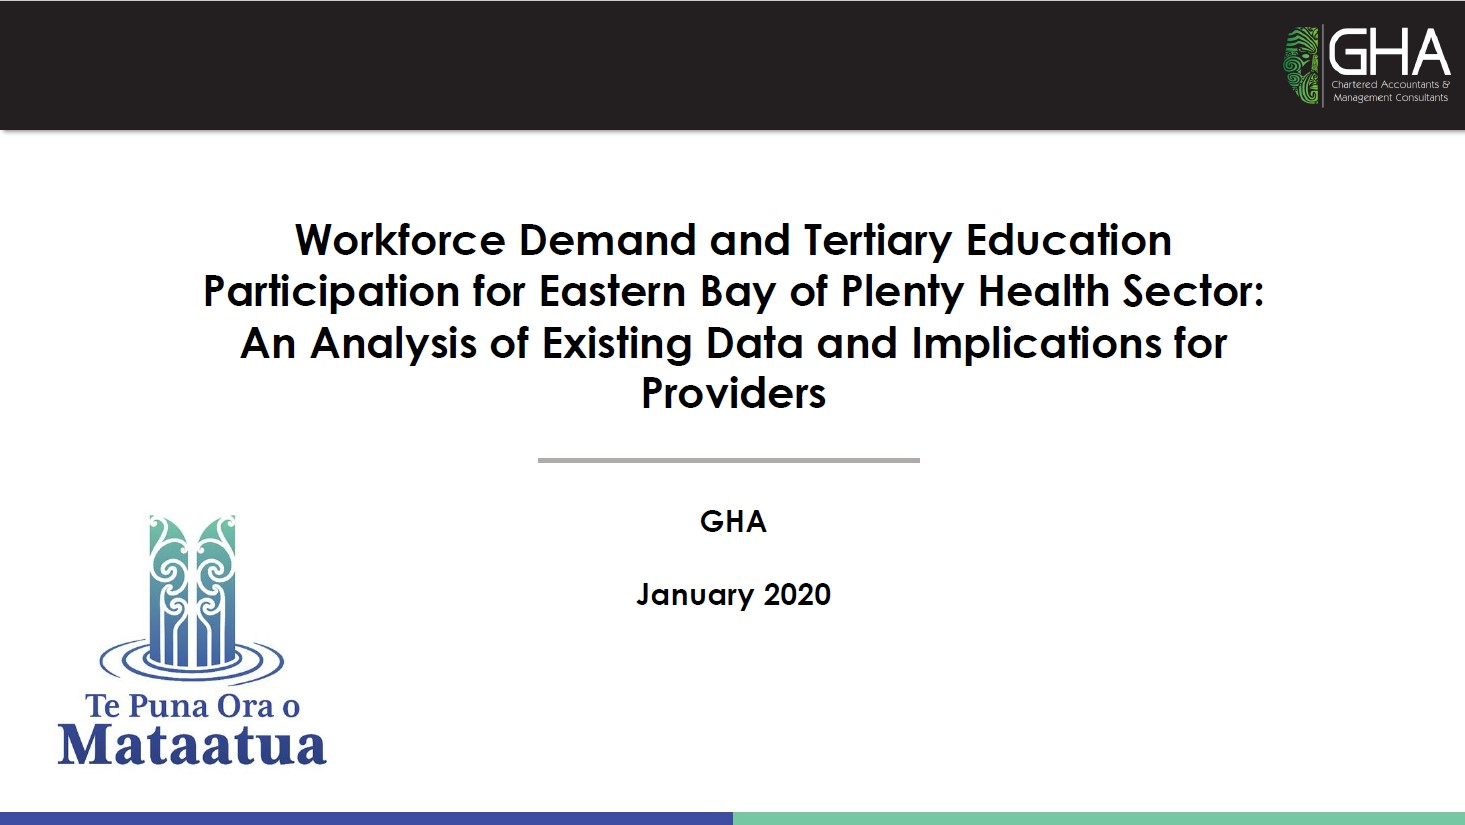 Report: Workforce Demand and Tertiary Education Participation for EBOPHealth Sector